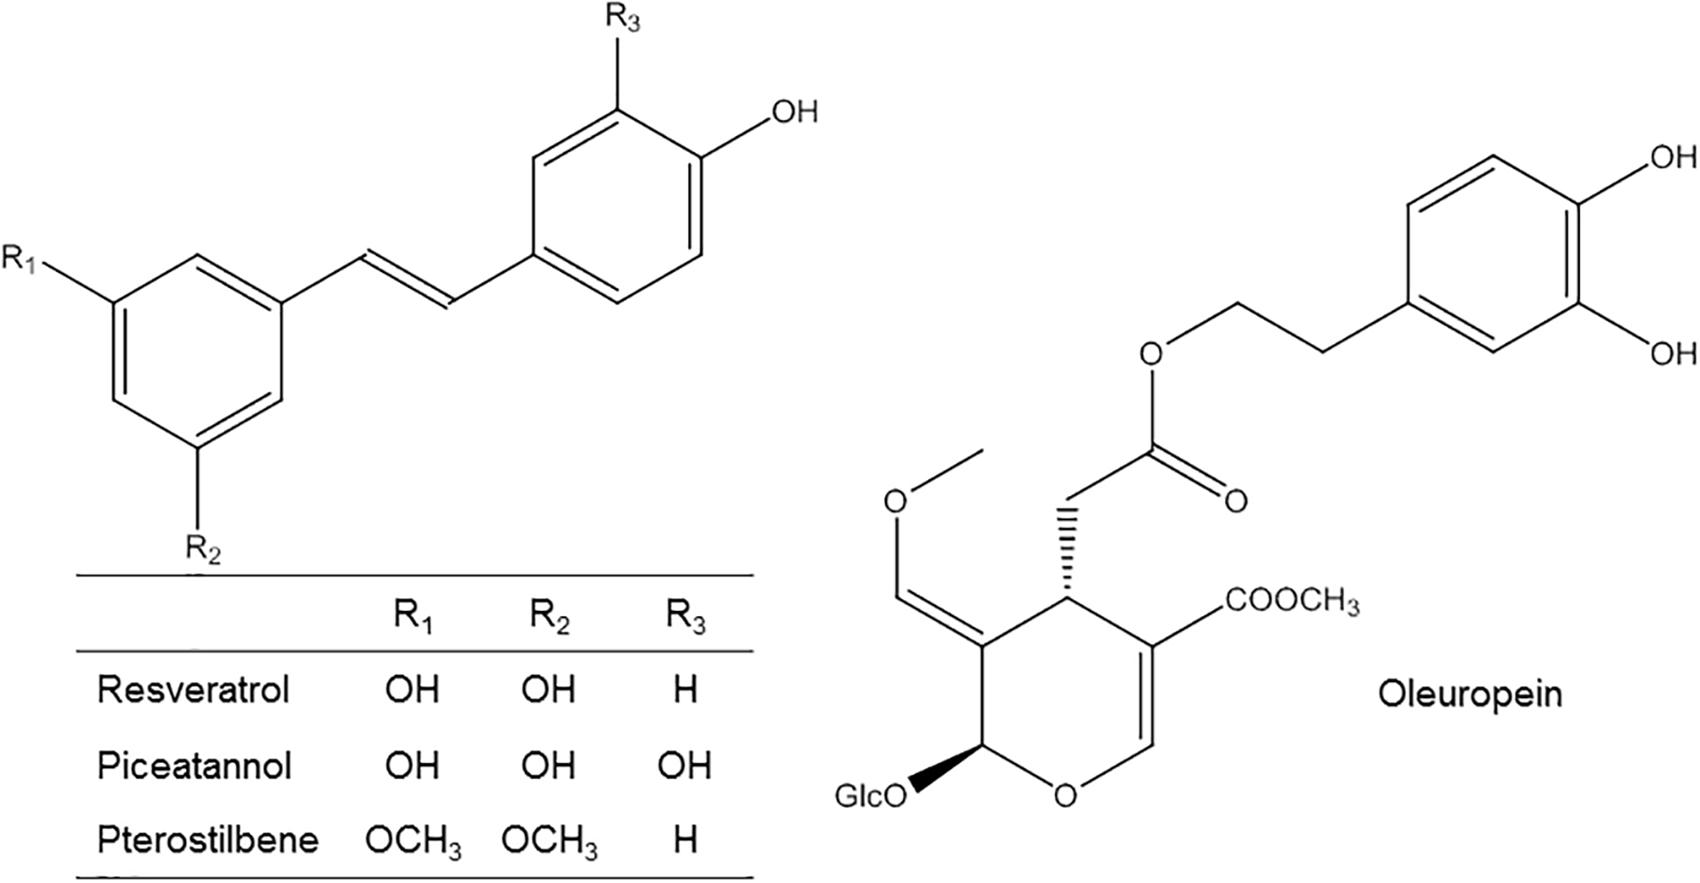 Frontiers Phenolic Compounds Characteristic Of The Mediterranean Item Safety0021 Basic Components And Symbols In A Circuit Chart